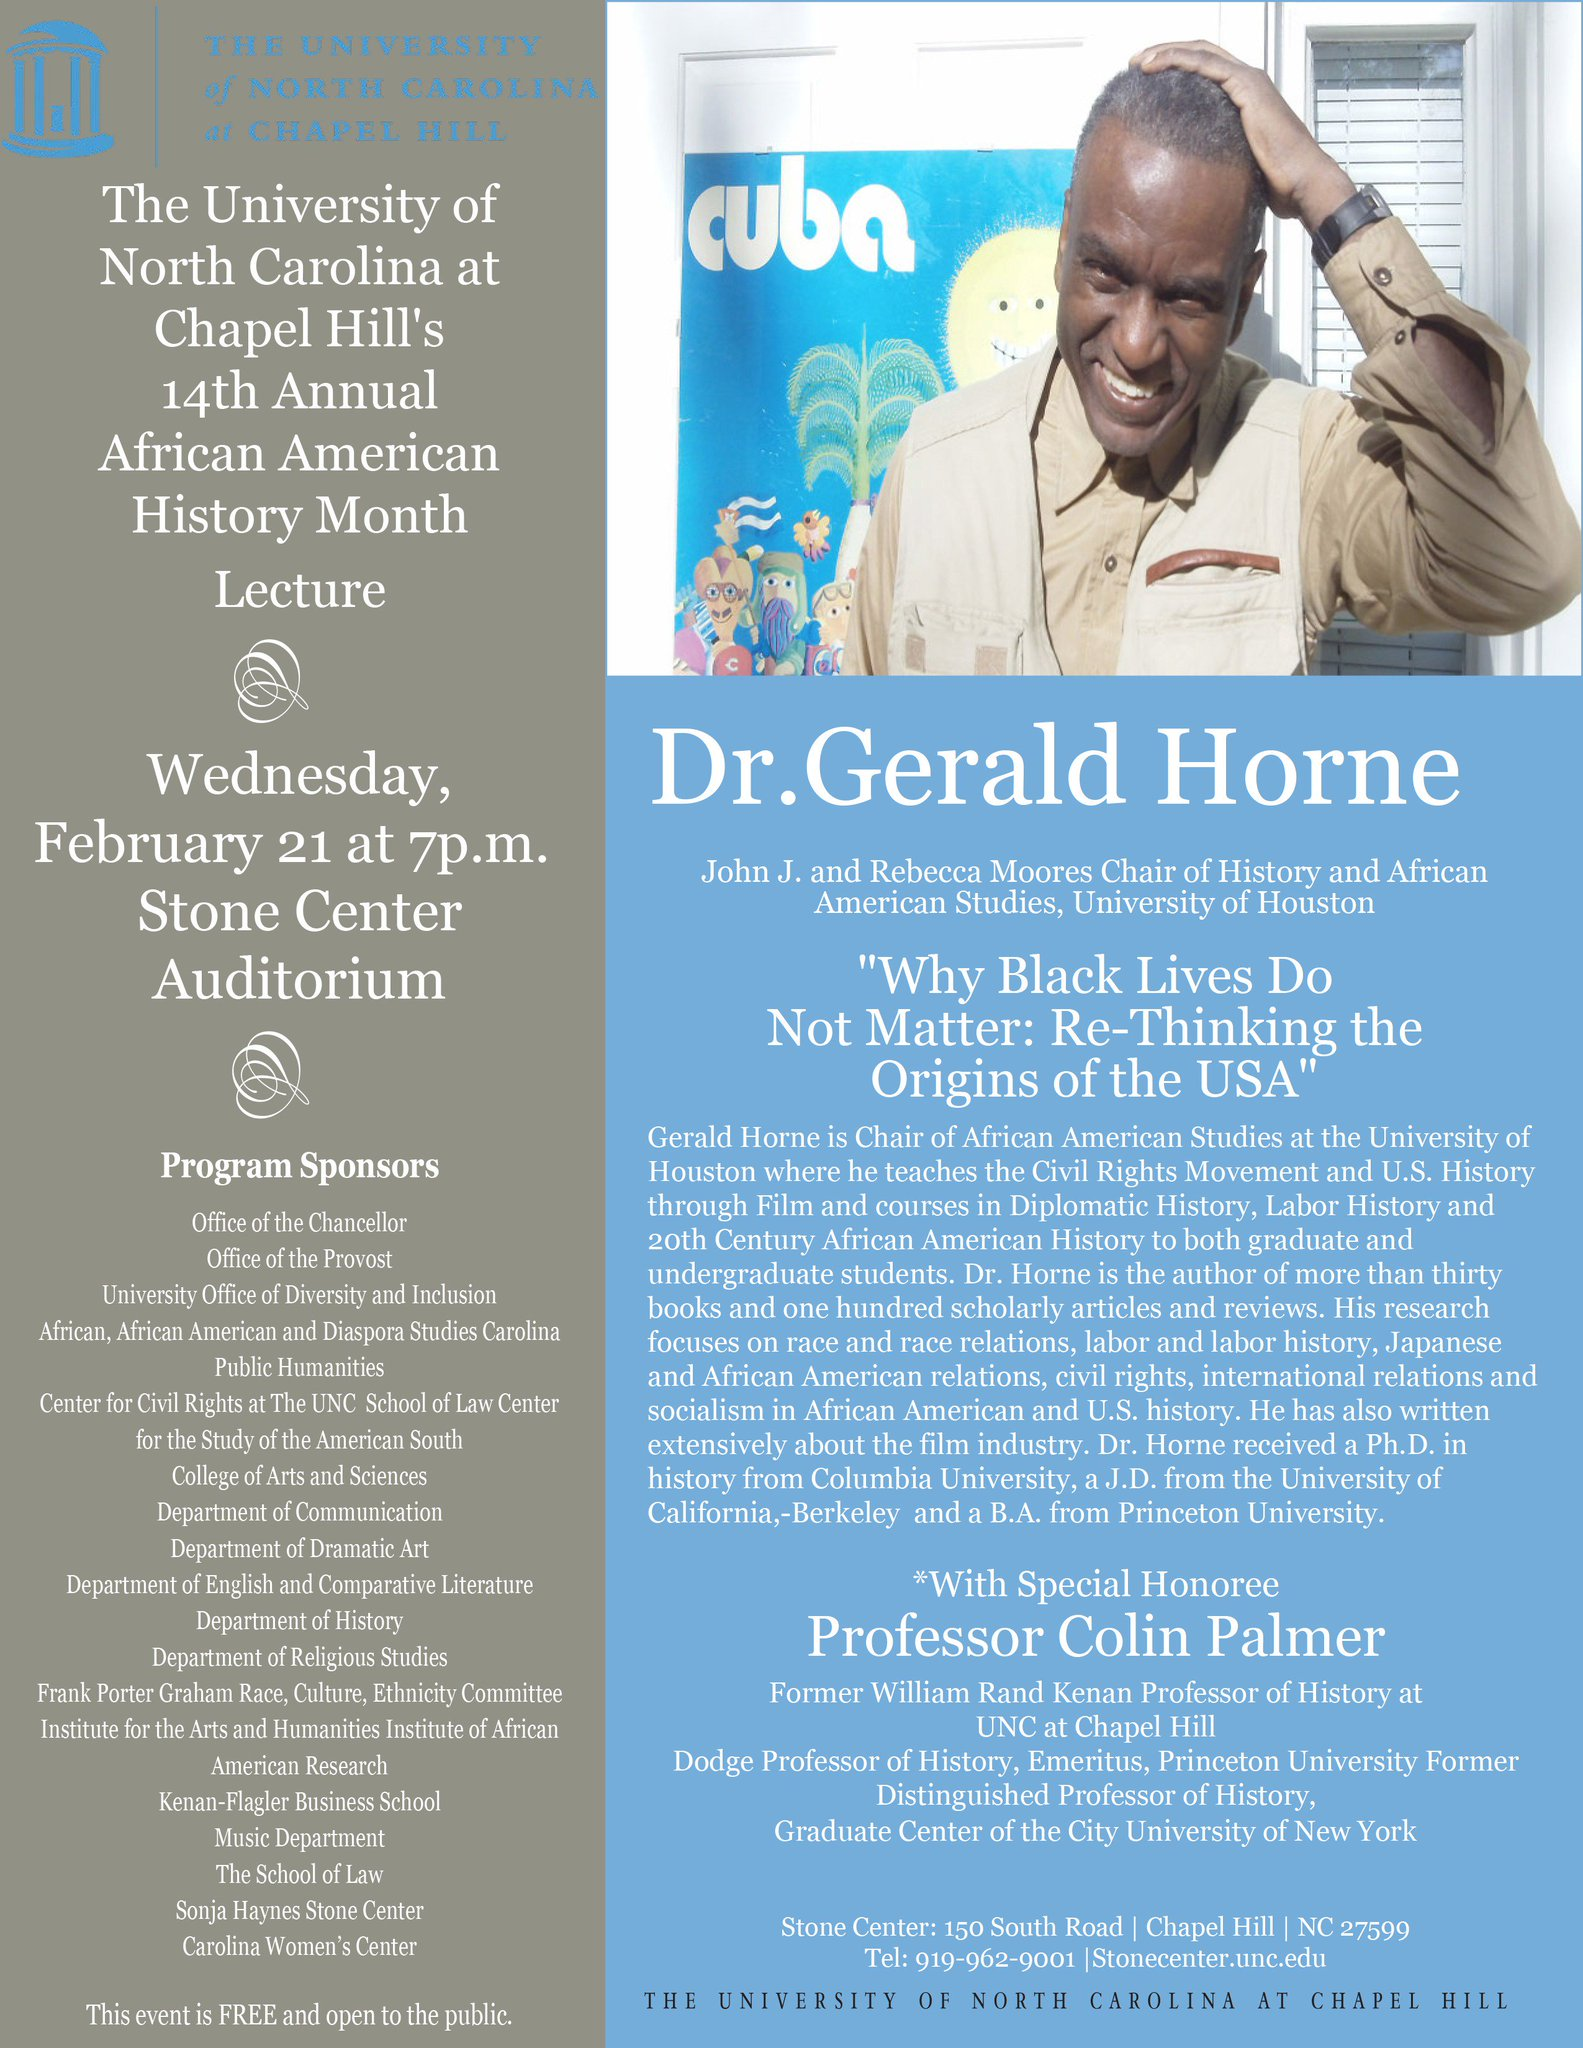 Unc Stone Center On Twitter We Are Excited To Welcome Dr Gerald Horne Wednesday Feb 21 For S Annual African American History Month Lecture